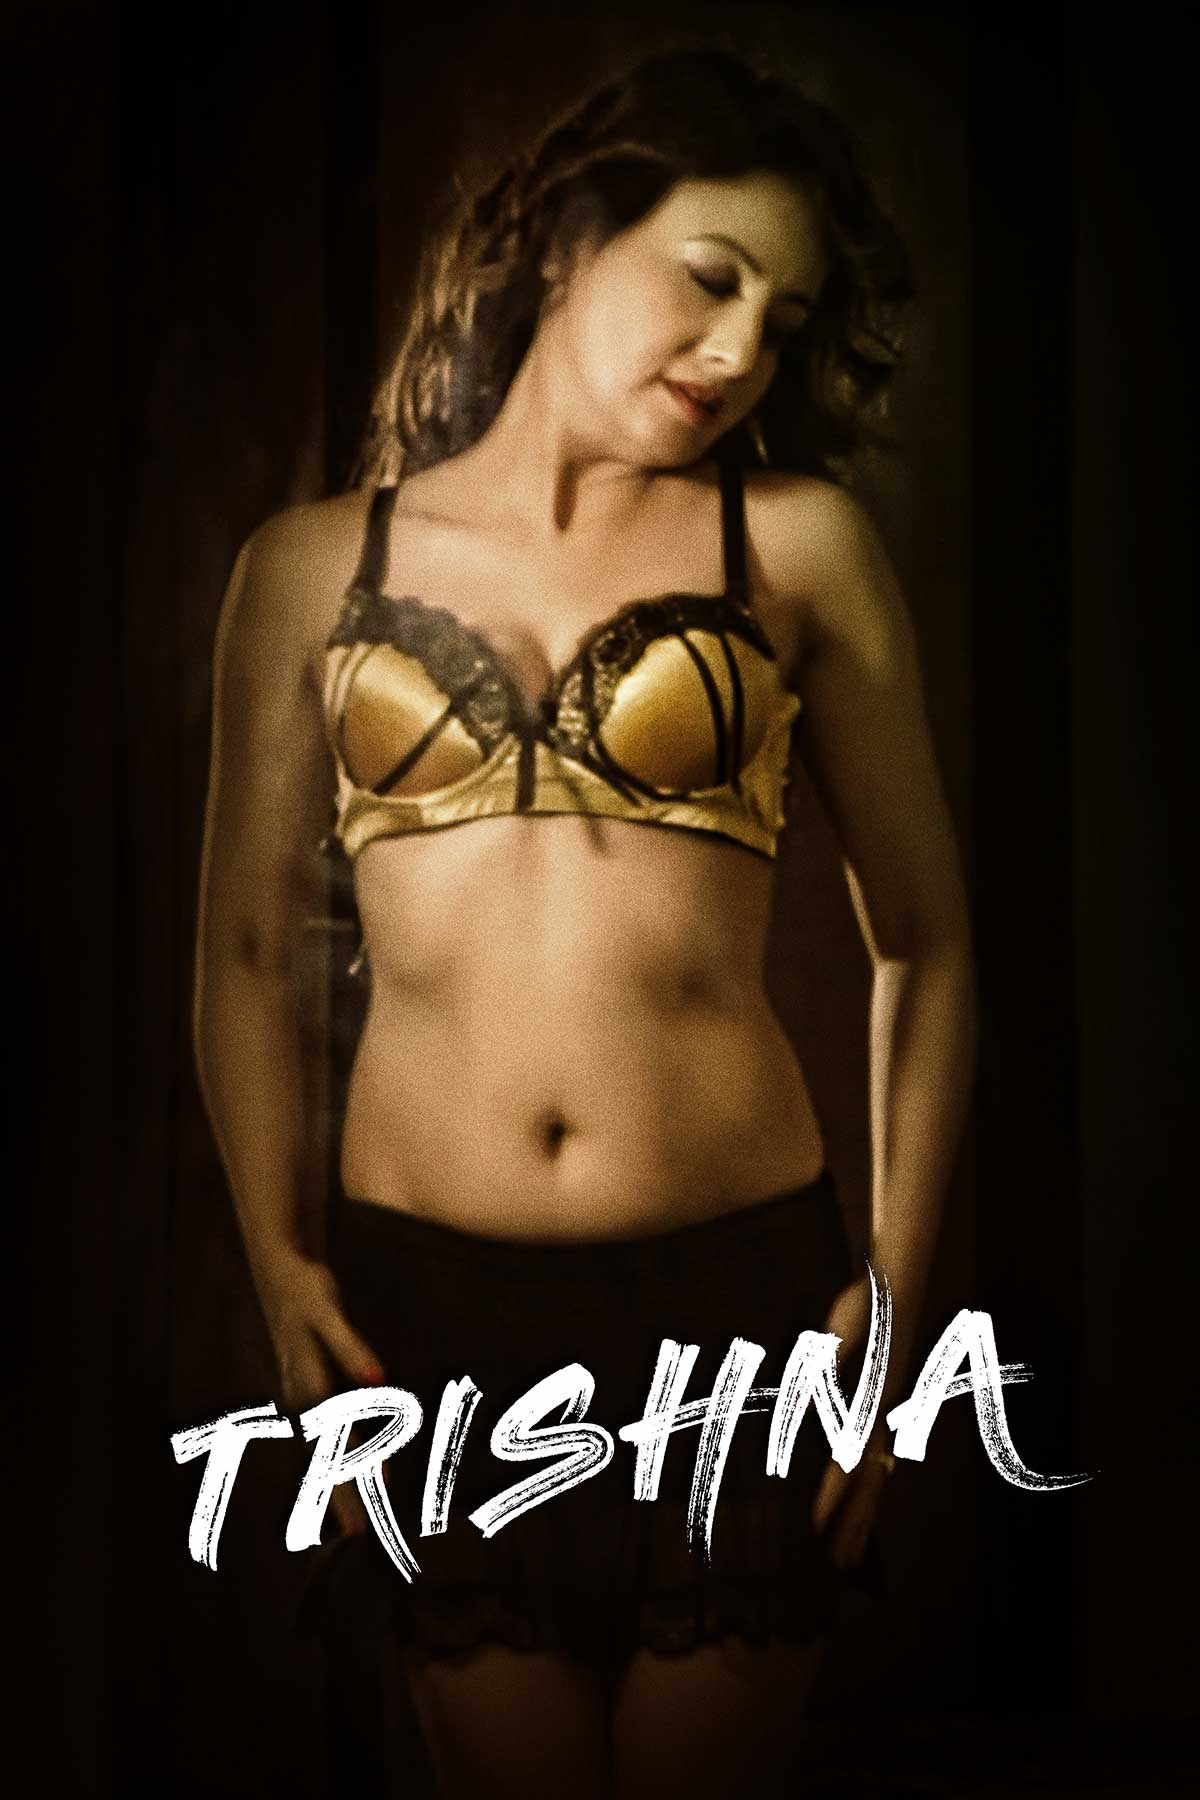 18+ Trishna 2020 S01 Hindi Kooku App Complete Web Series 480p HDRip 400MB x264 AAC